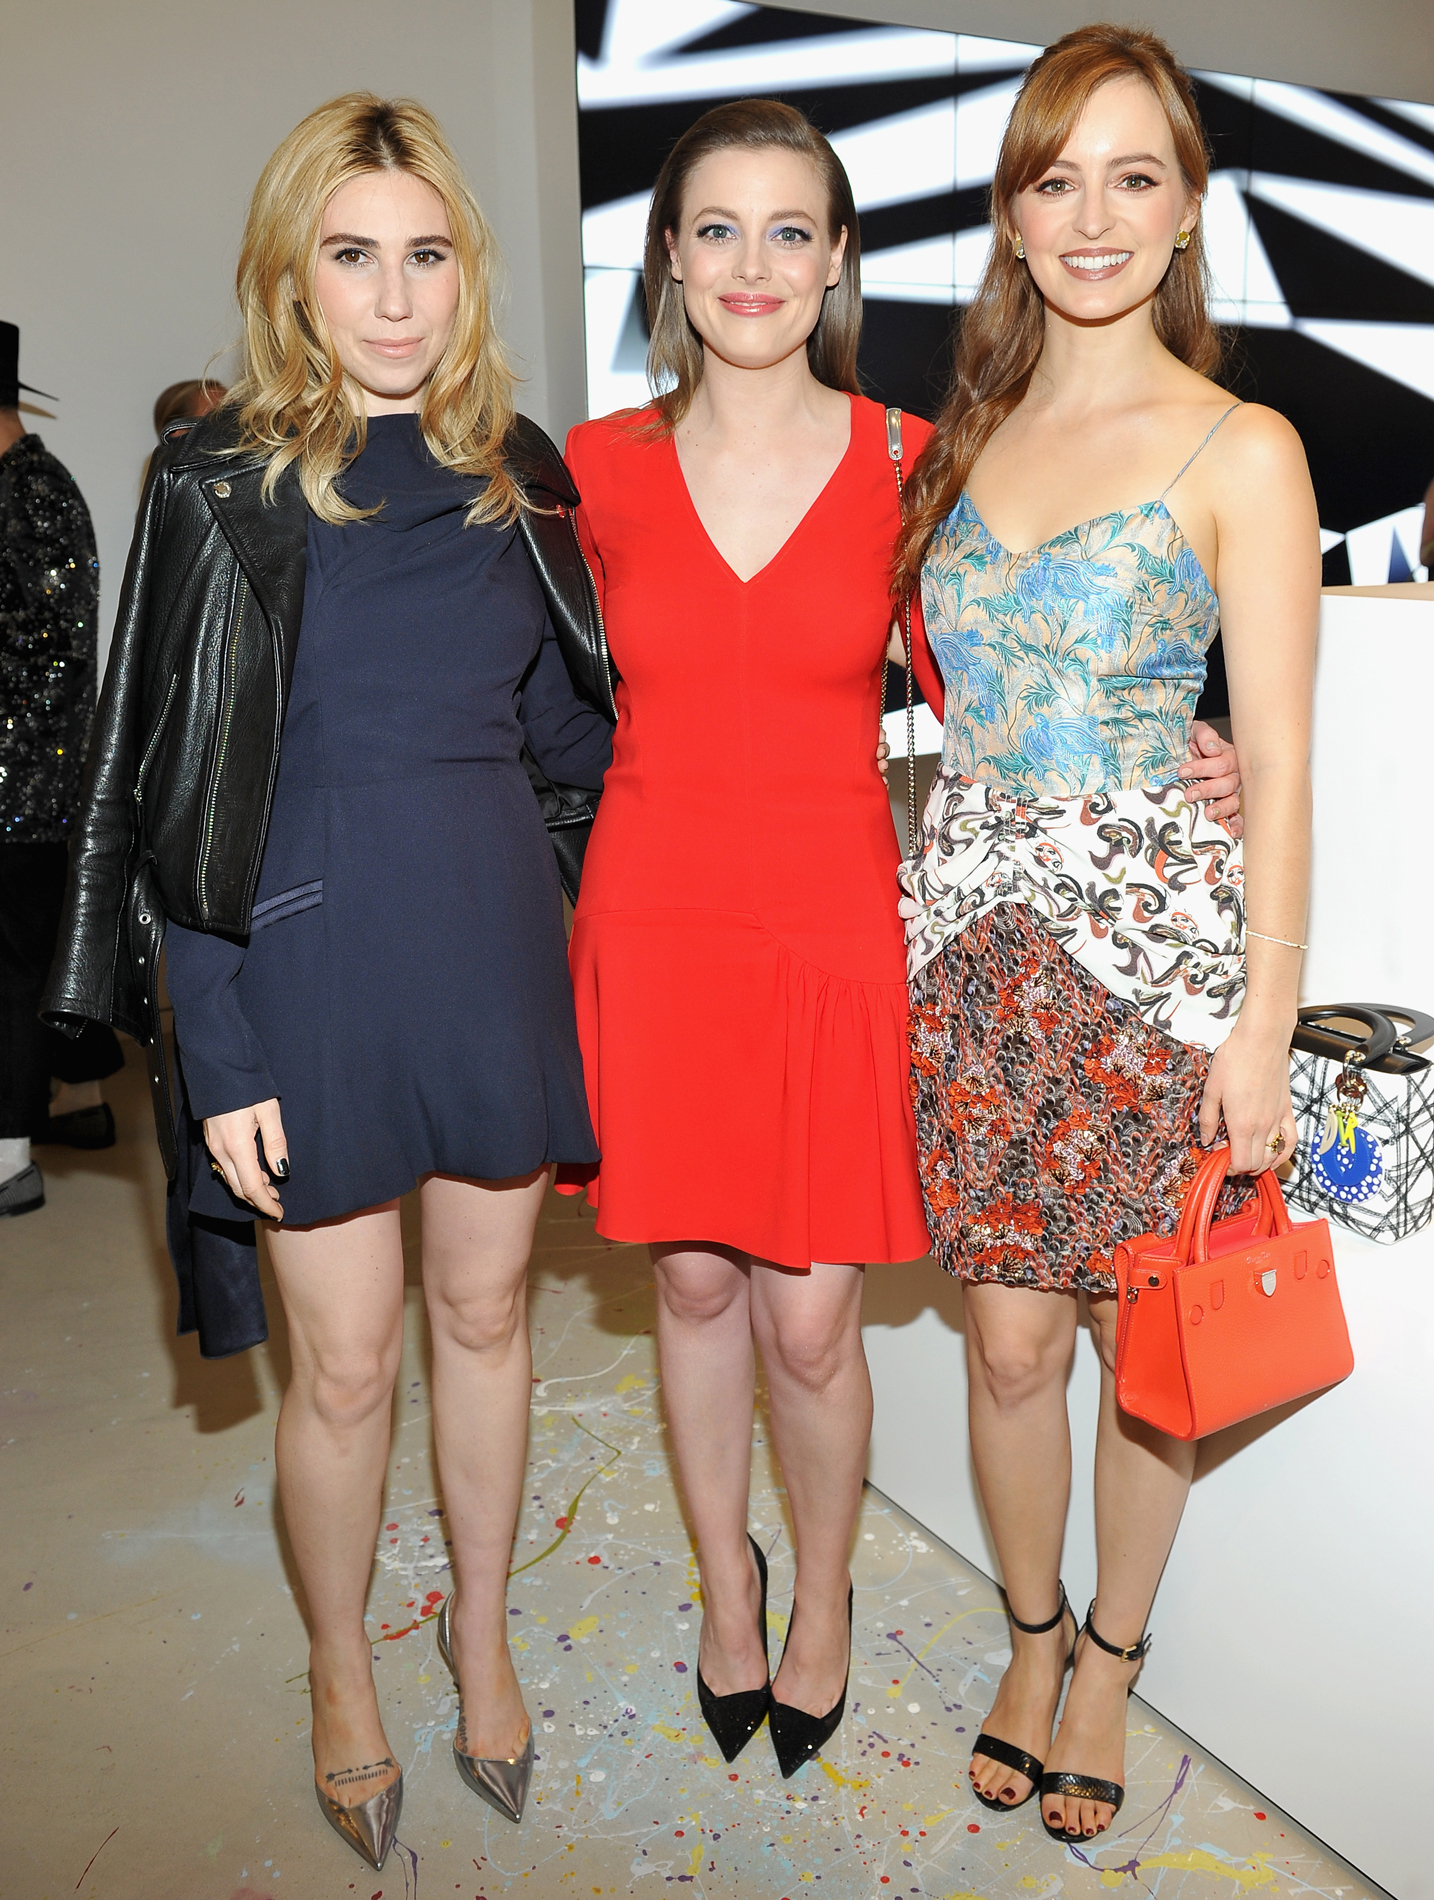 Zosia Mamet, Gillian Jacobs and Ahna O'Reilly